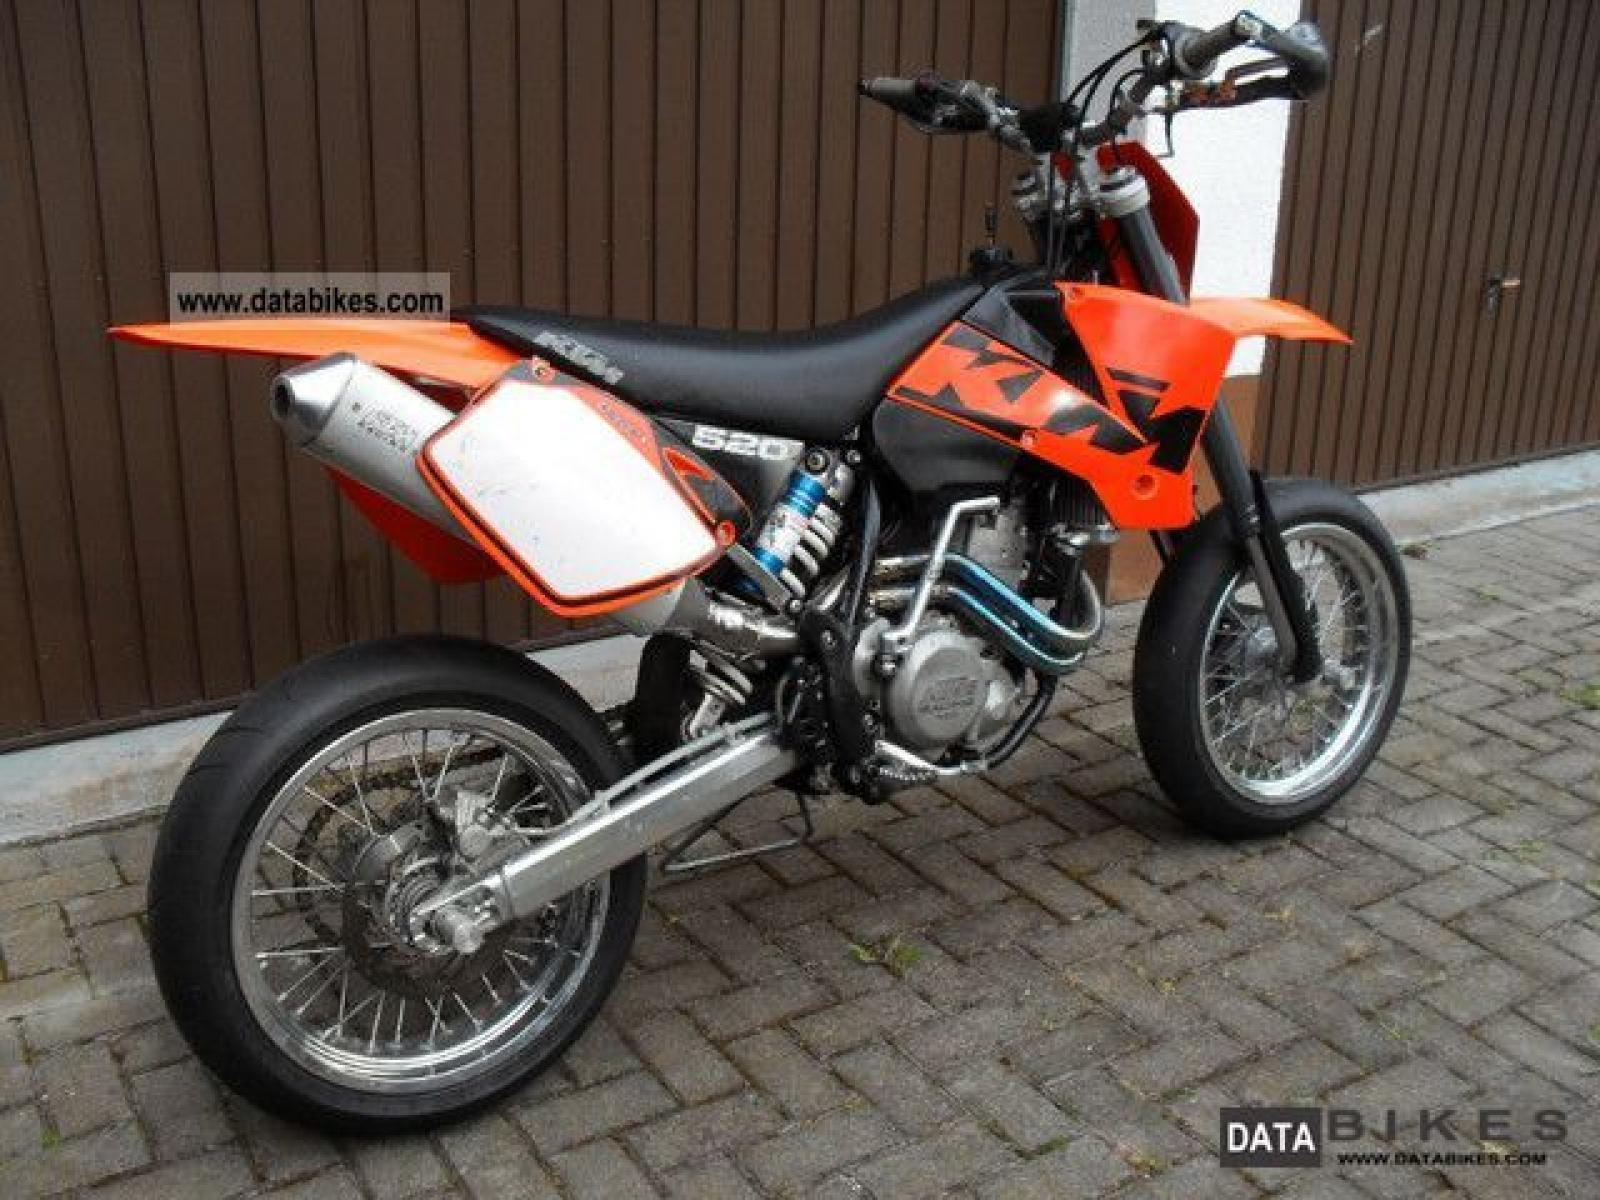 hight resolution of 800 1024 1280 1600 origin ktm 520 sx